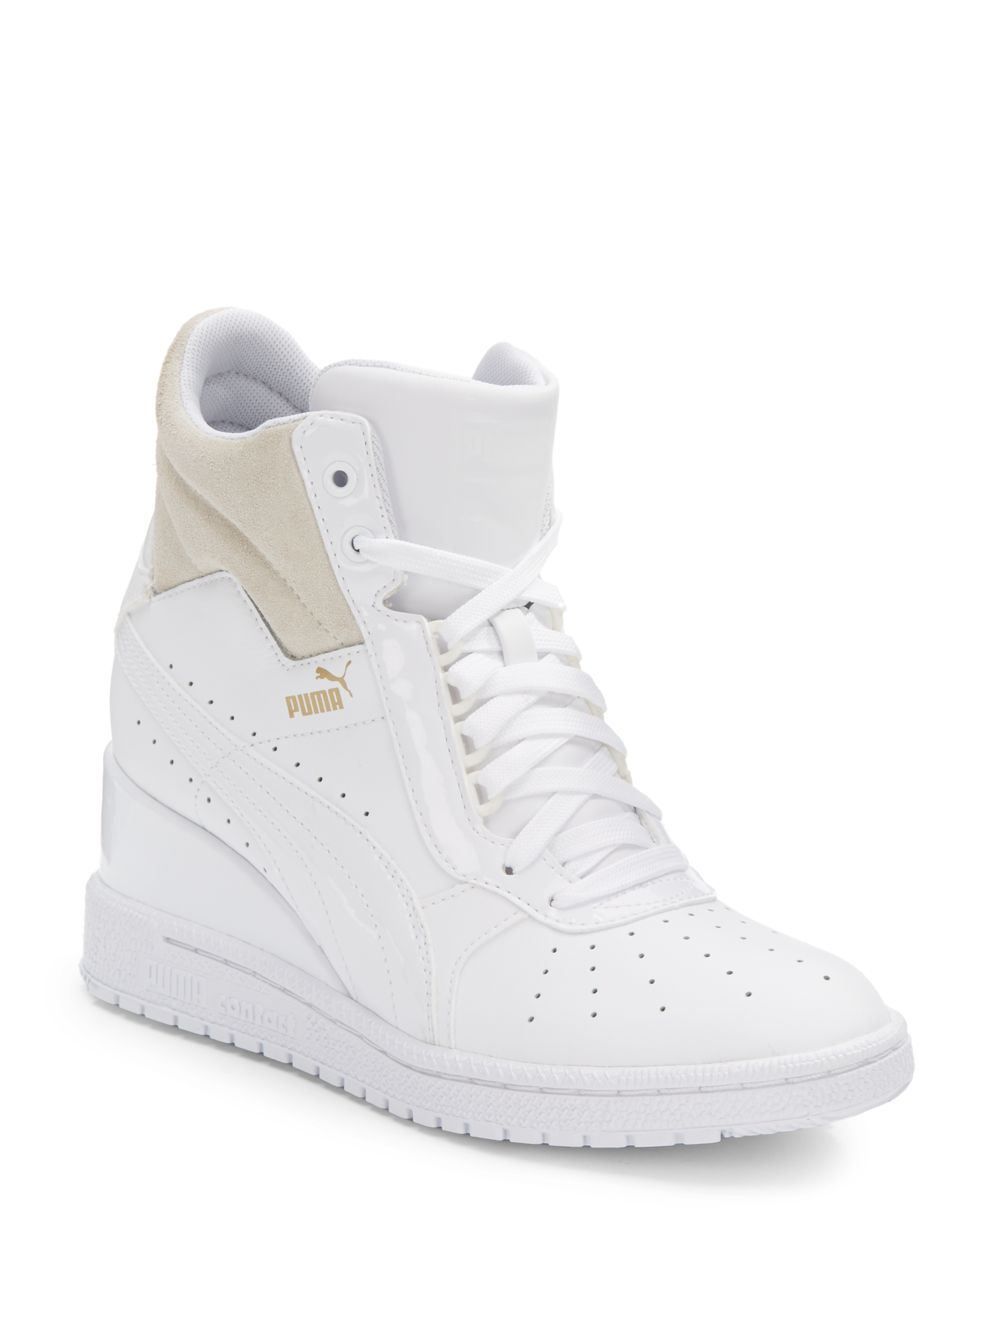 Lyst - PUMA Advantage Leather Wedge Sneakers in White 75f12c3c17fc